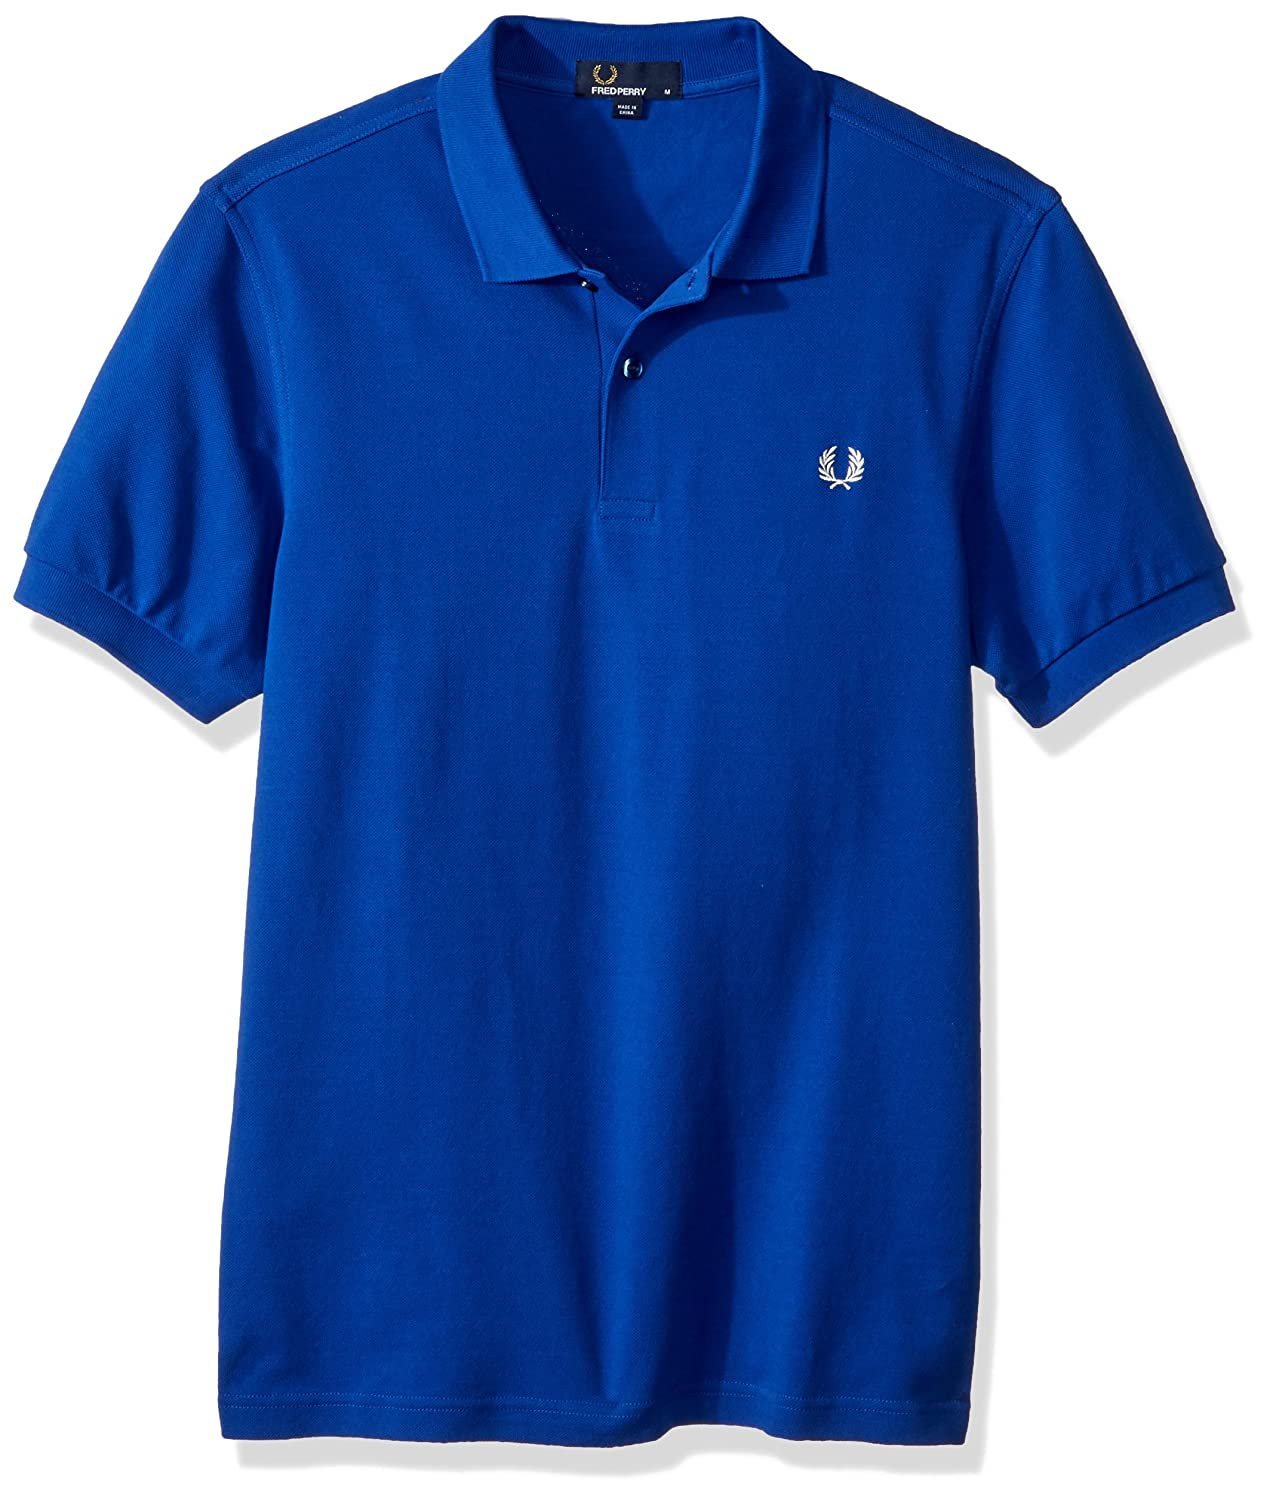 Bleu (Regal   Snow blanc F80) XL Frouge Perry Polo Homme